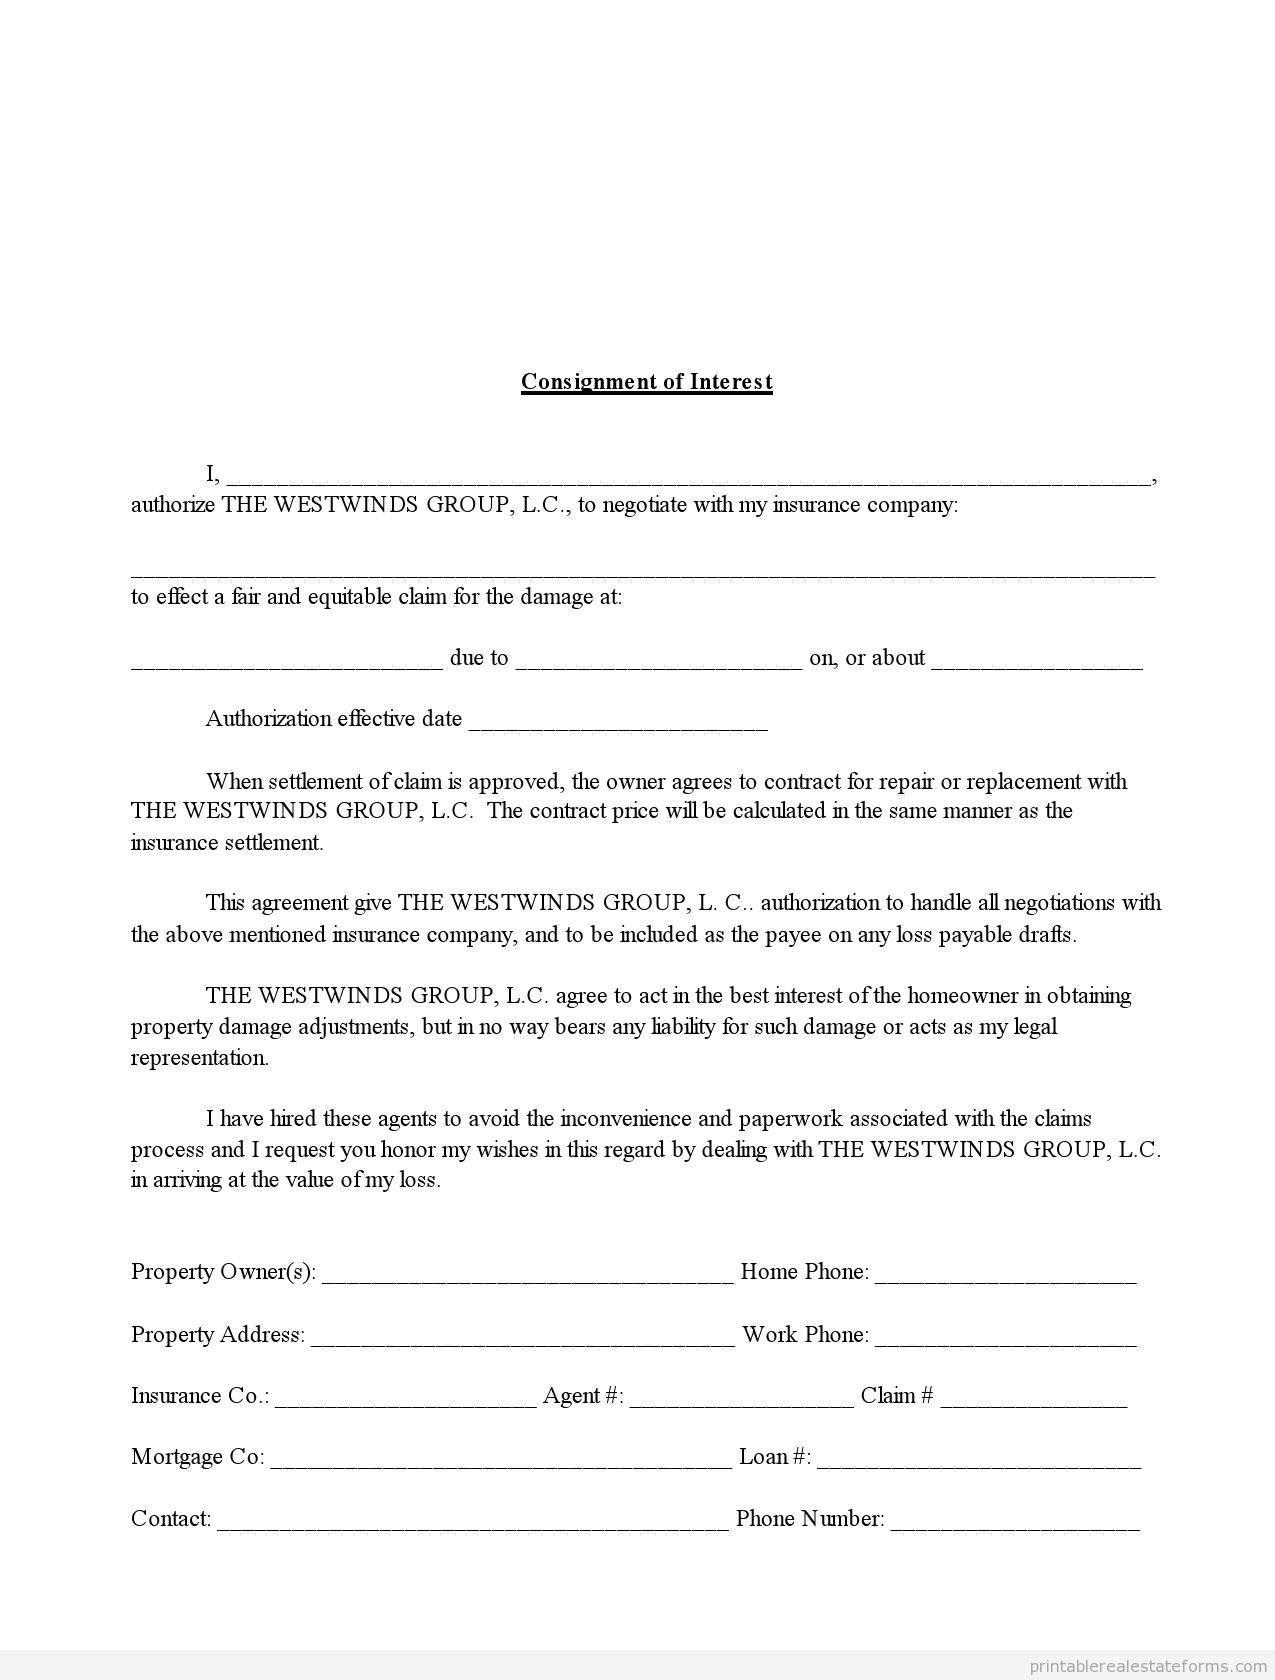 Printable Consignment Of Interest In Insurance Claim  Template